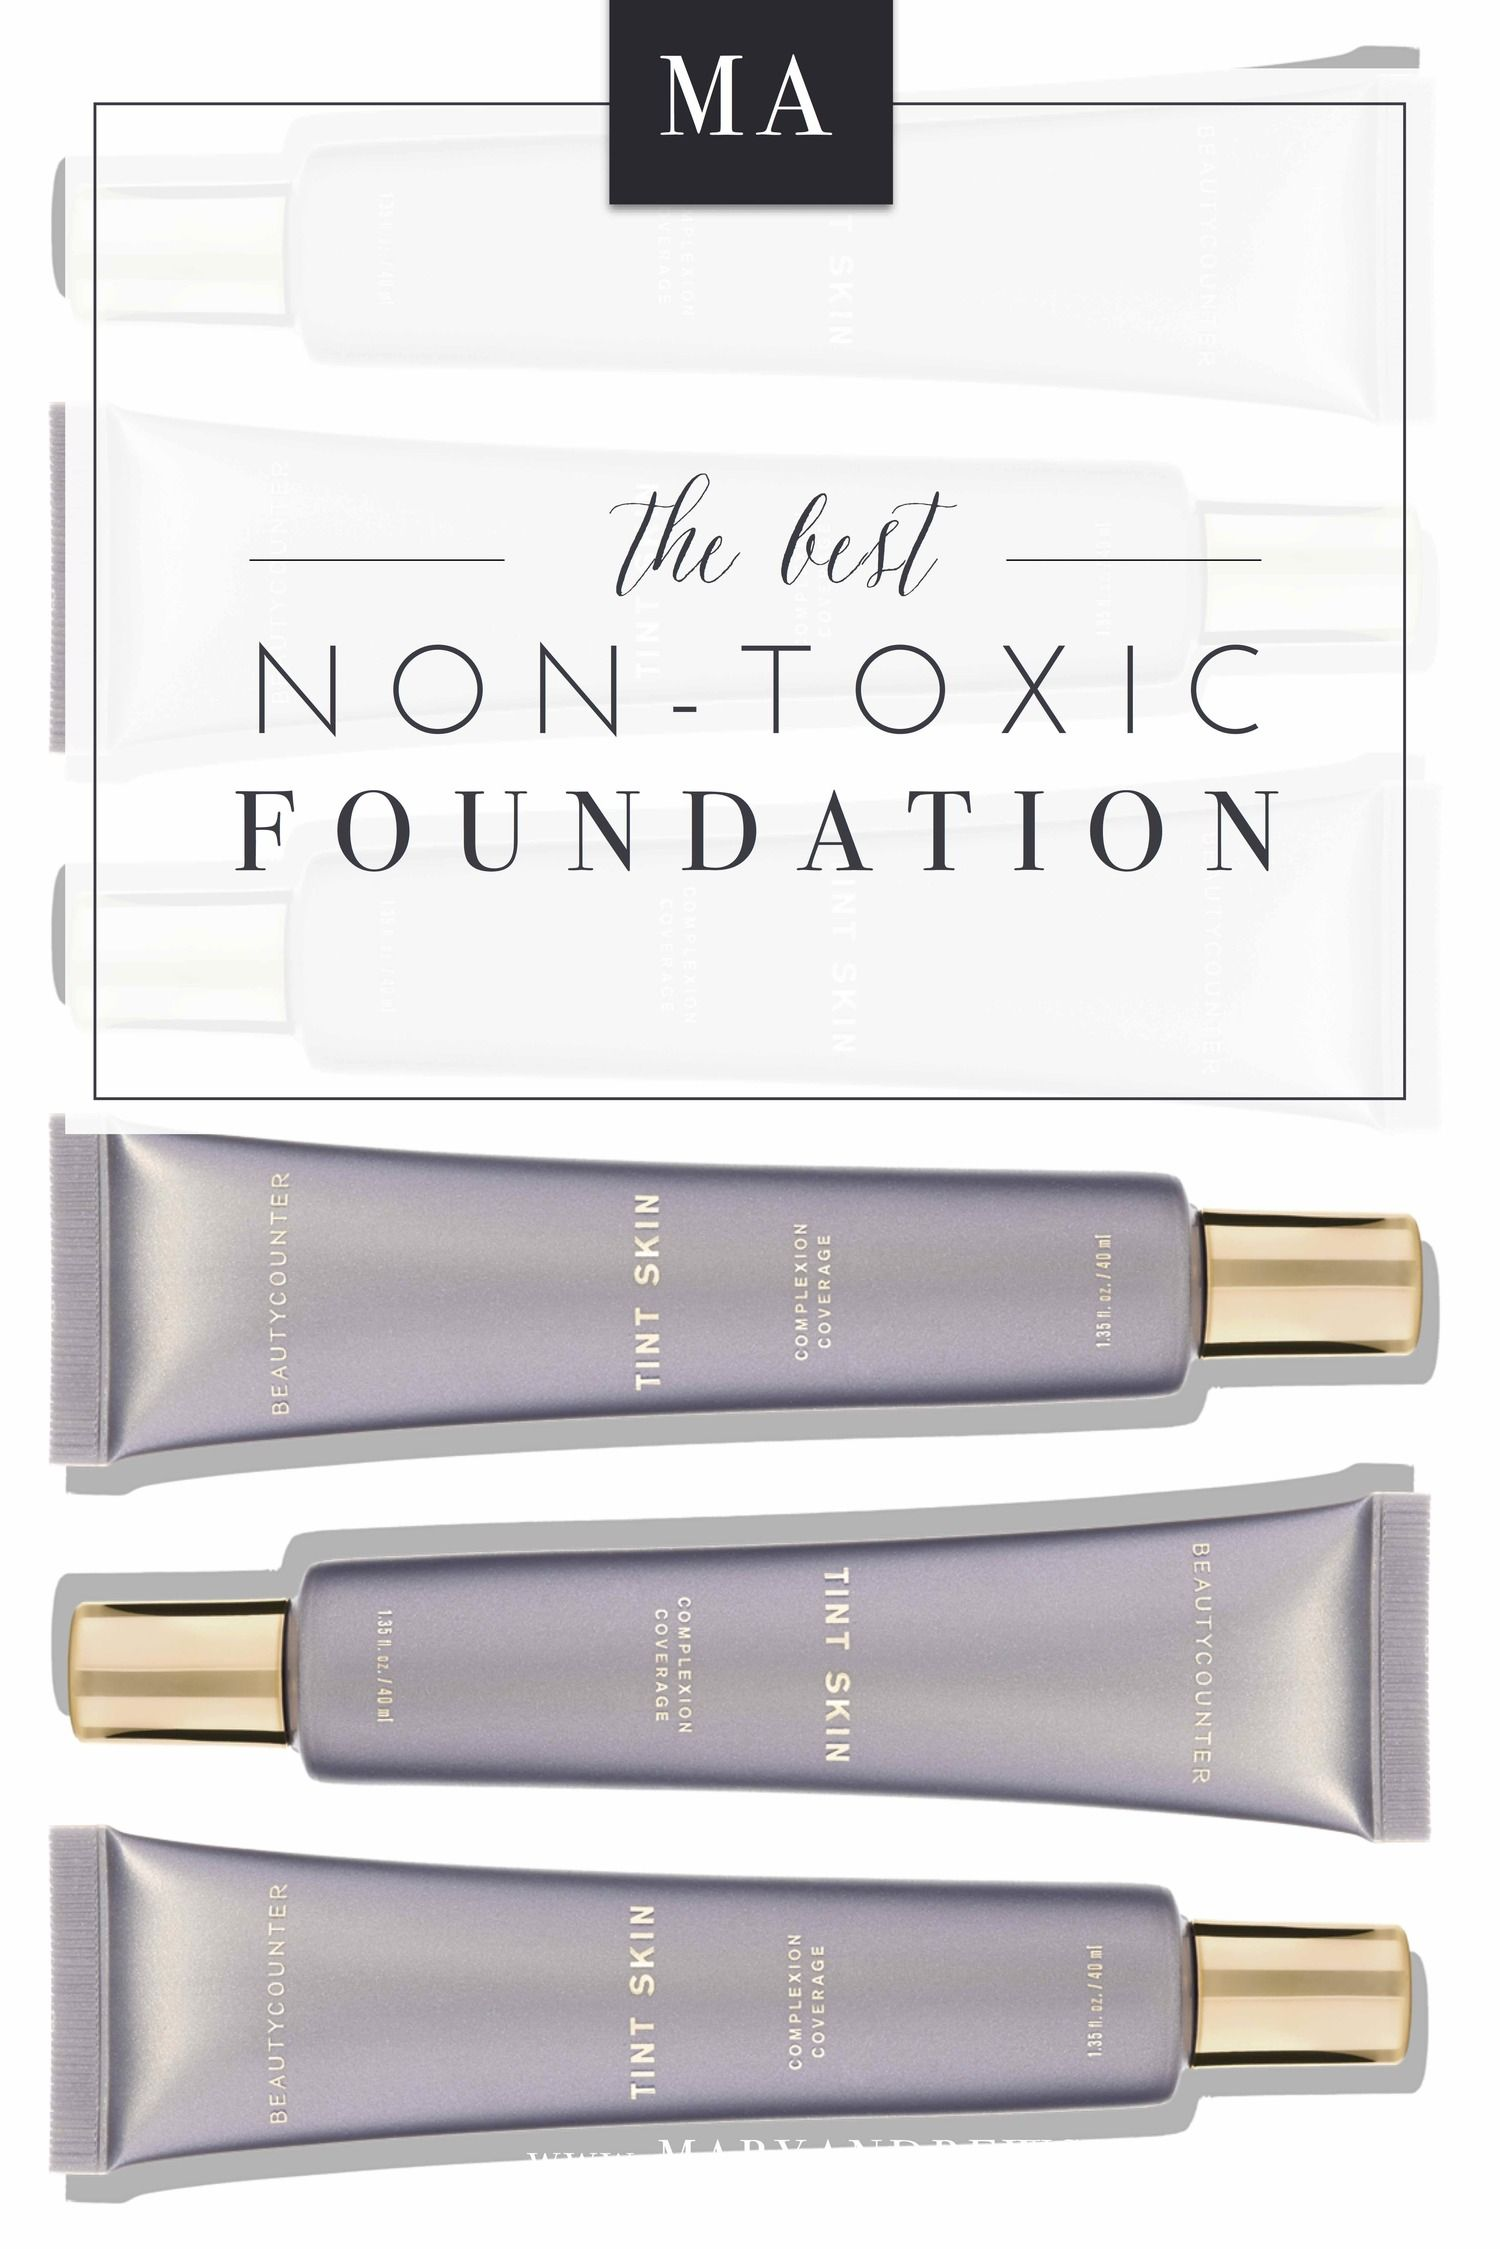 The Best NonToxic Foundation The first and only